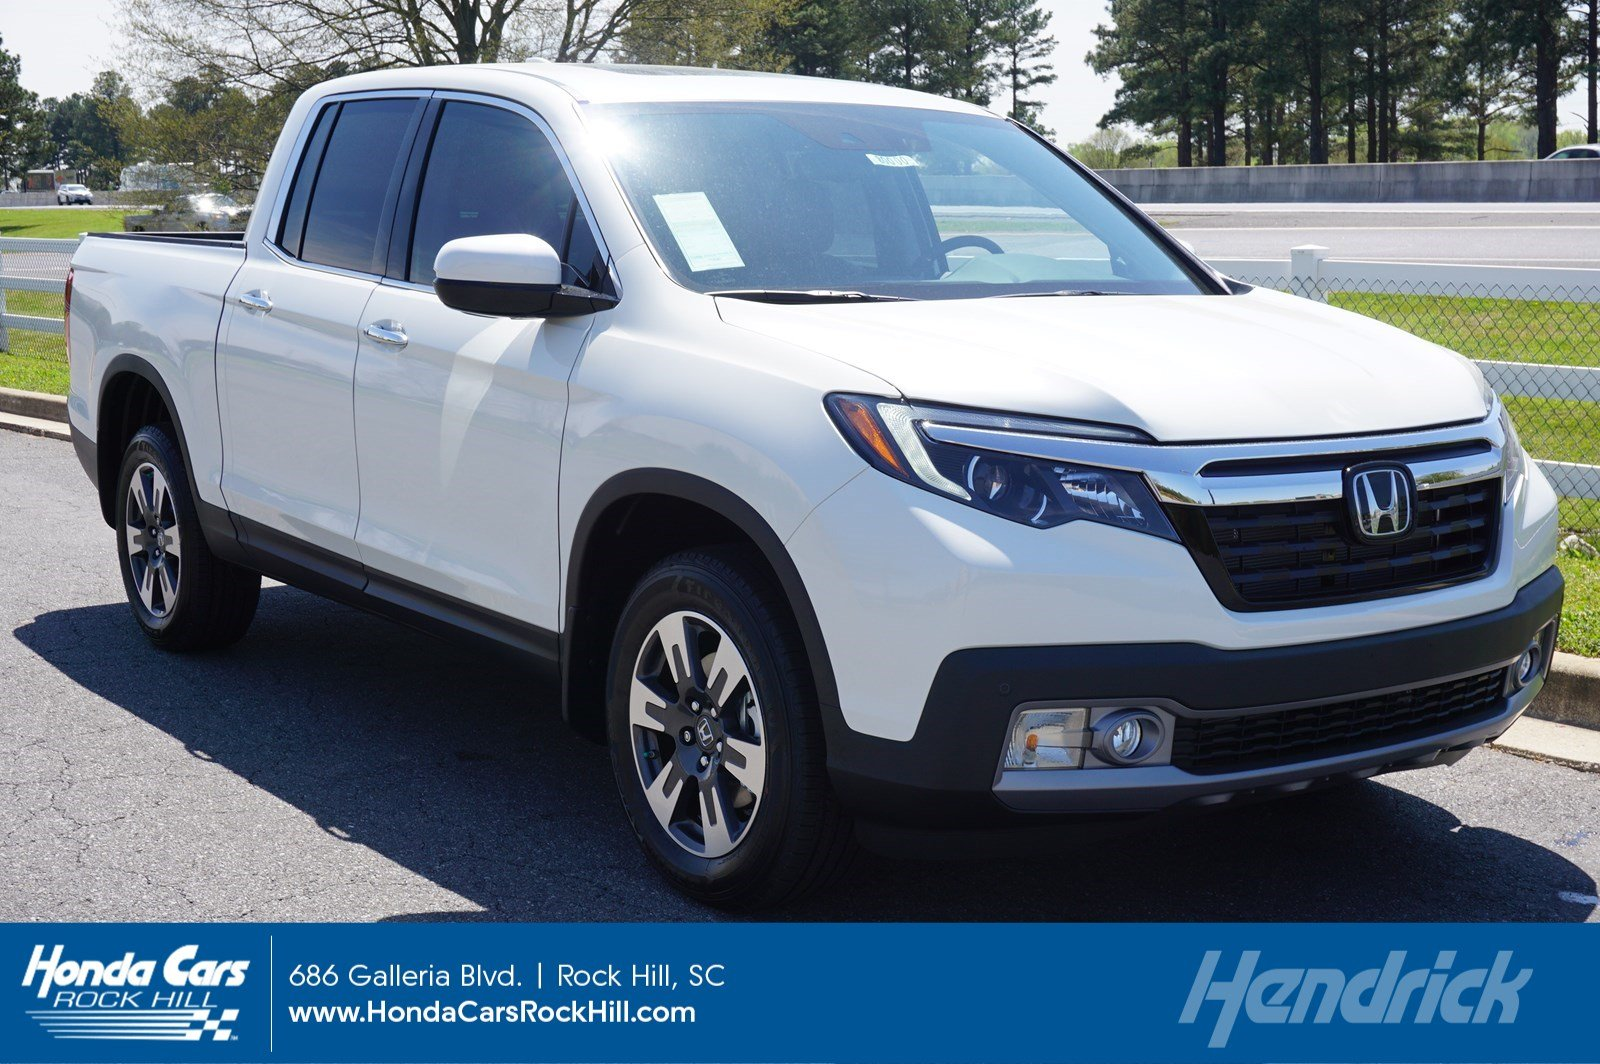 Honda Cars For Sale In Rock Hill Sc